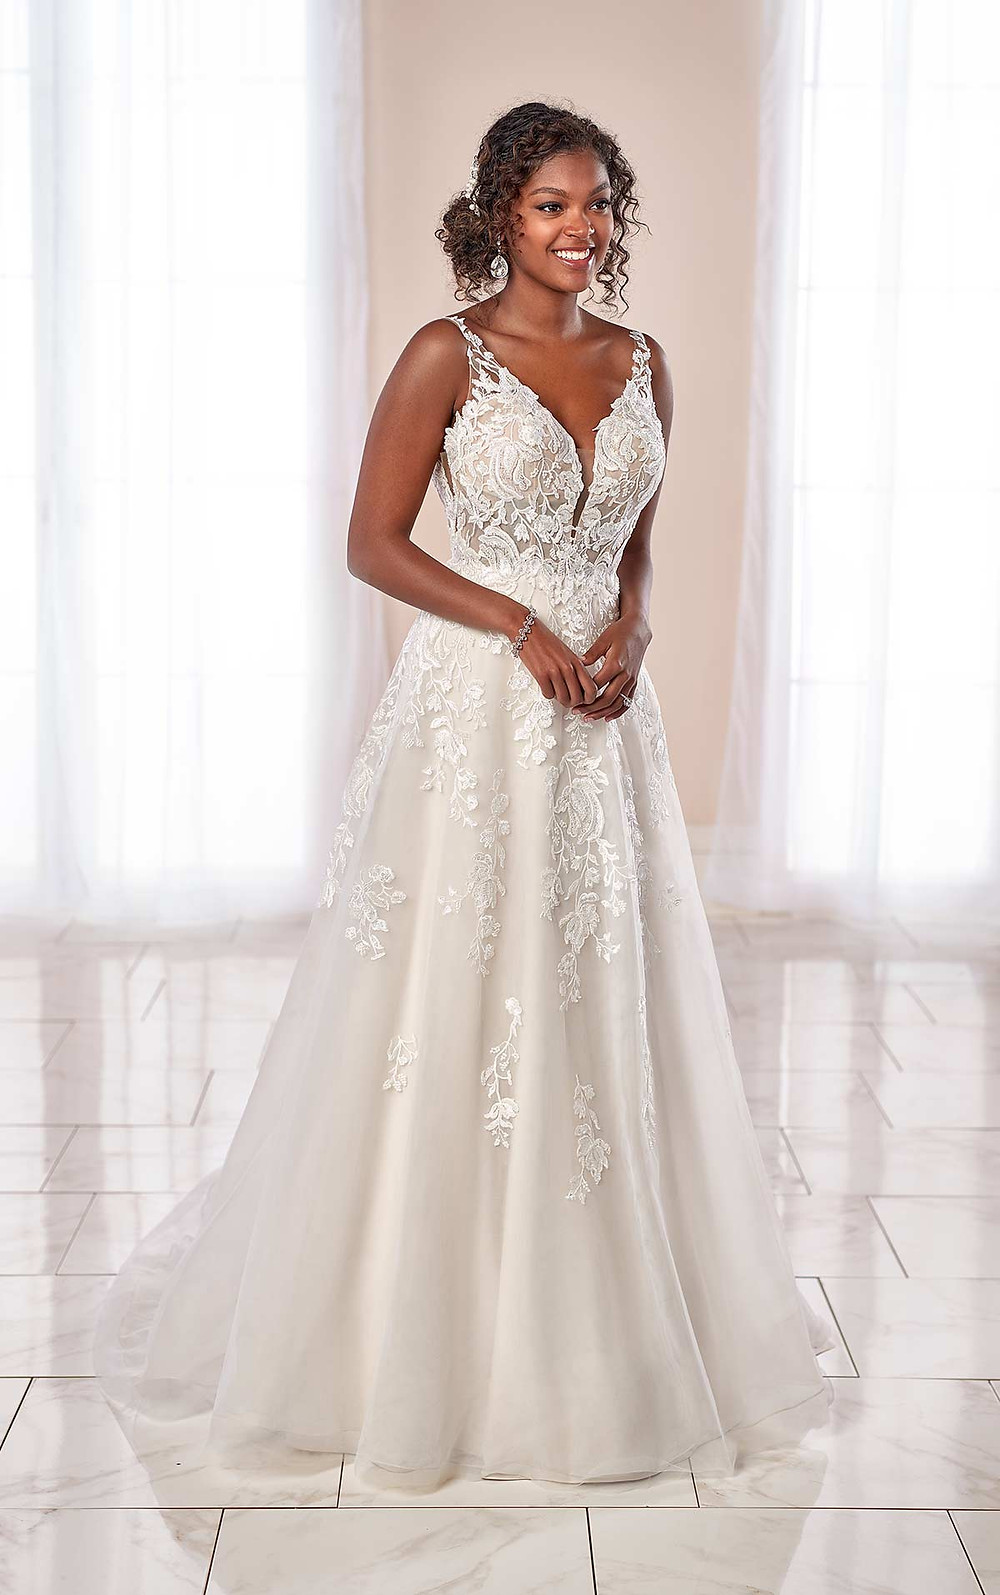 A Stella York 2020 lace and mesh A-line wedding dress with straps